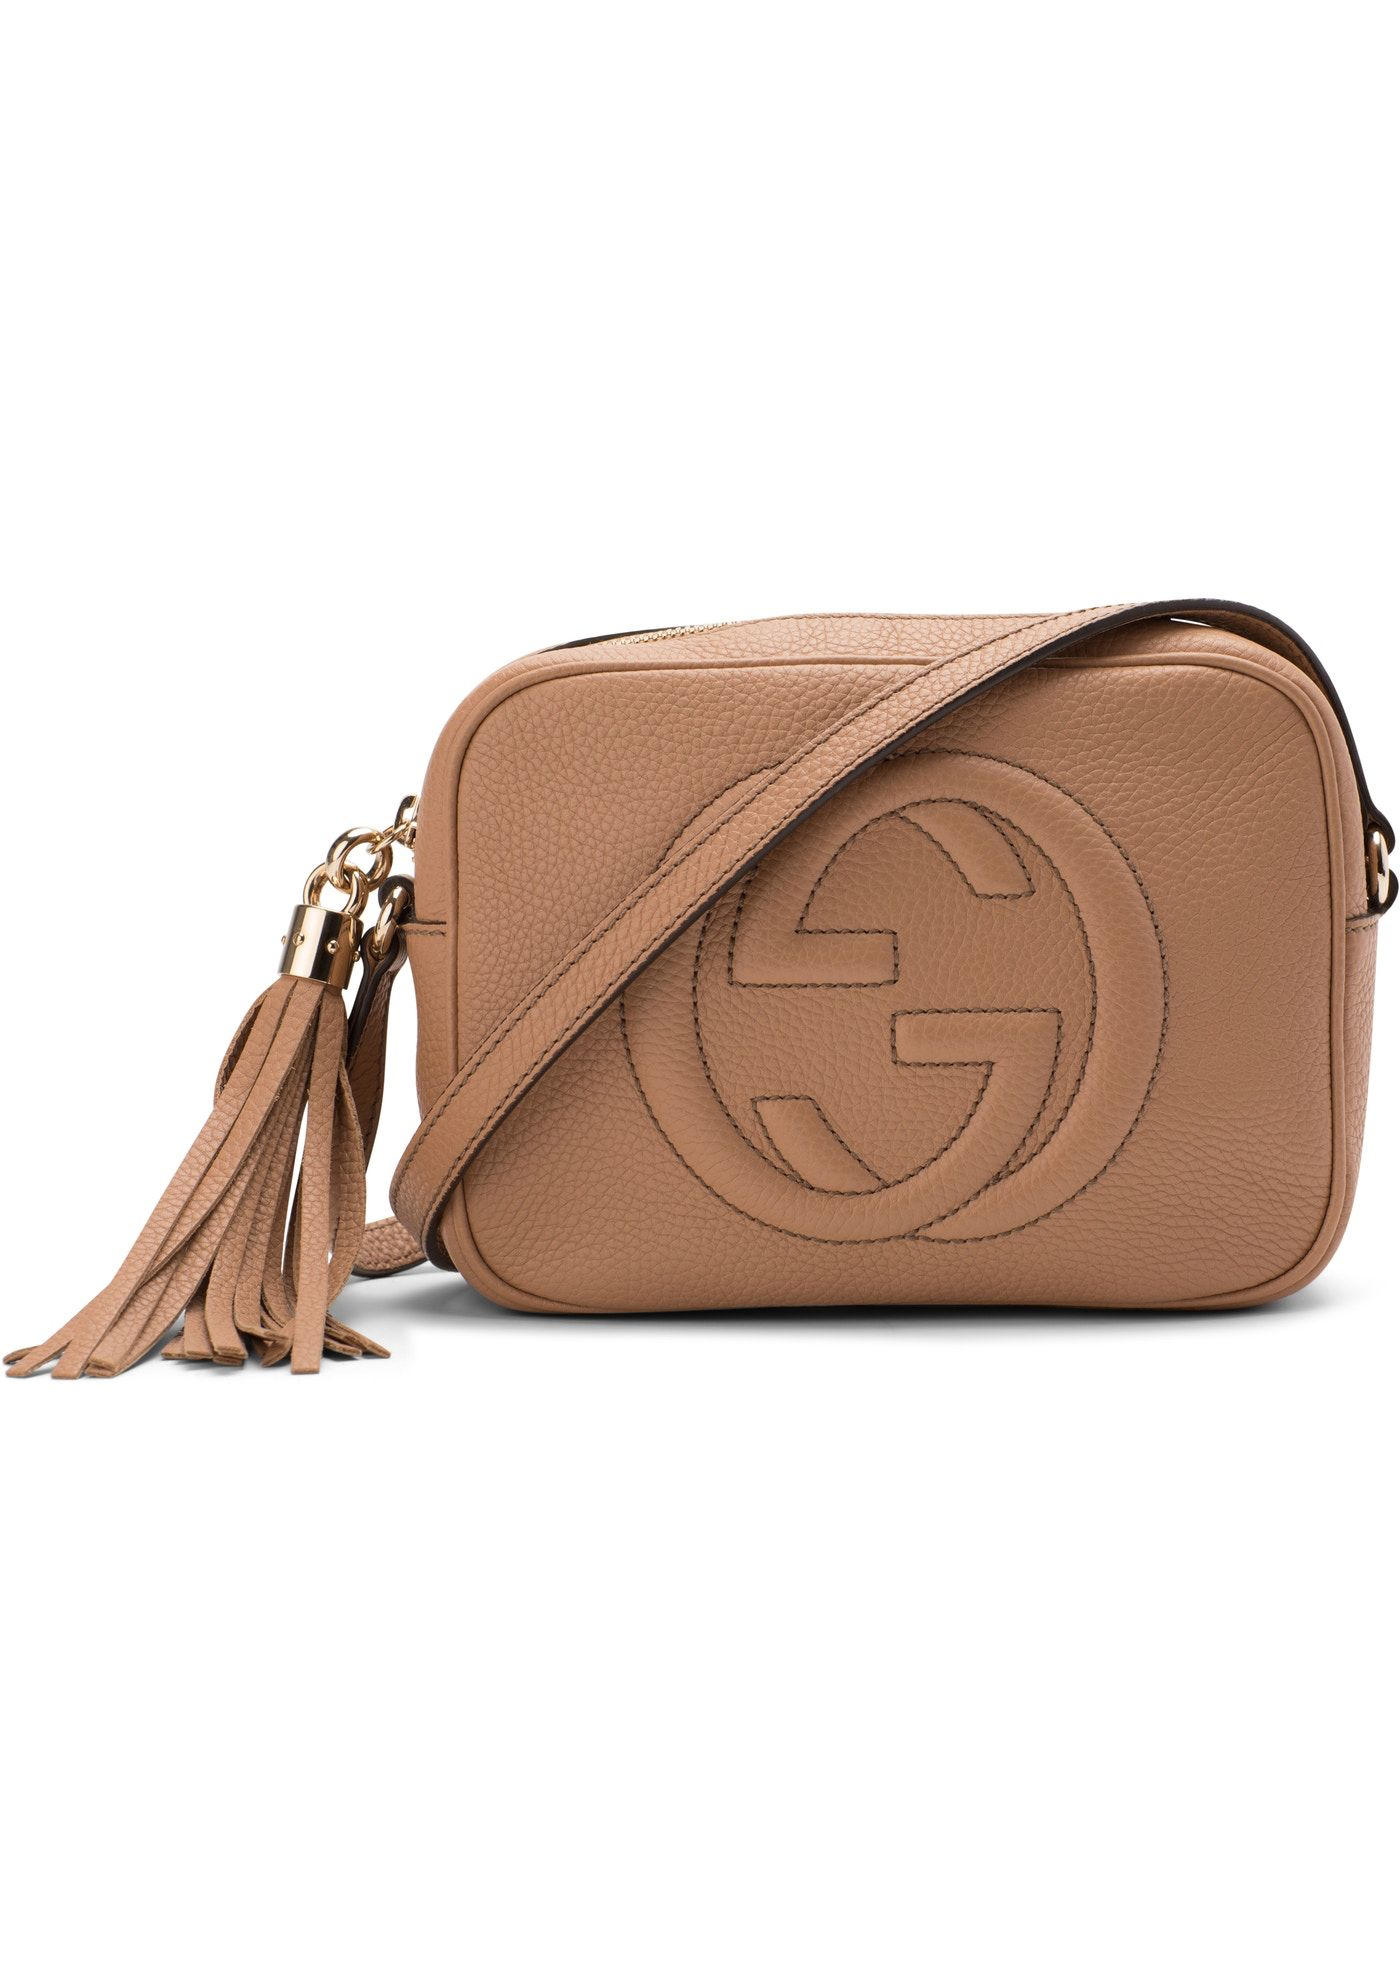 a8972e70 Check out the Gucci Disco Soho GG Interlocking GG Logo Small Rose Beige  available on StockX